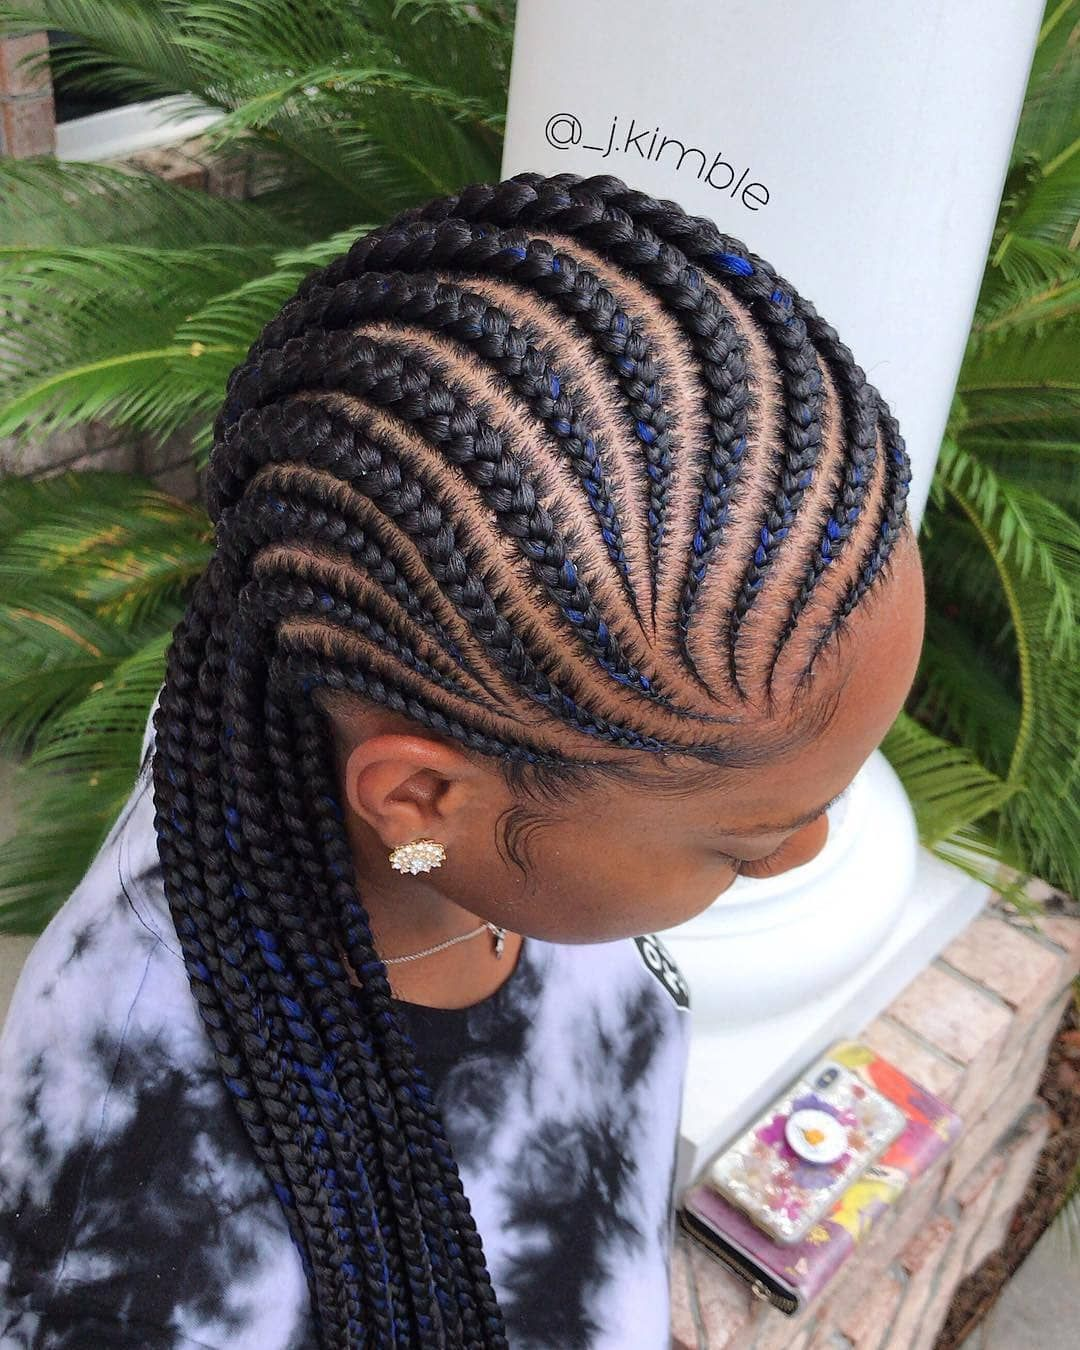 There Are So Many Different Ways To Get Creative With Your Braids Cornrow Hairstyles African Hair Braiding Styles Natural Hair Styles